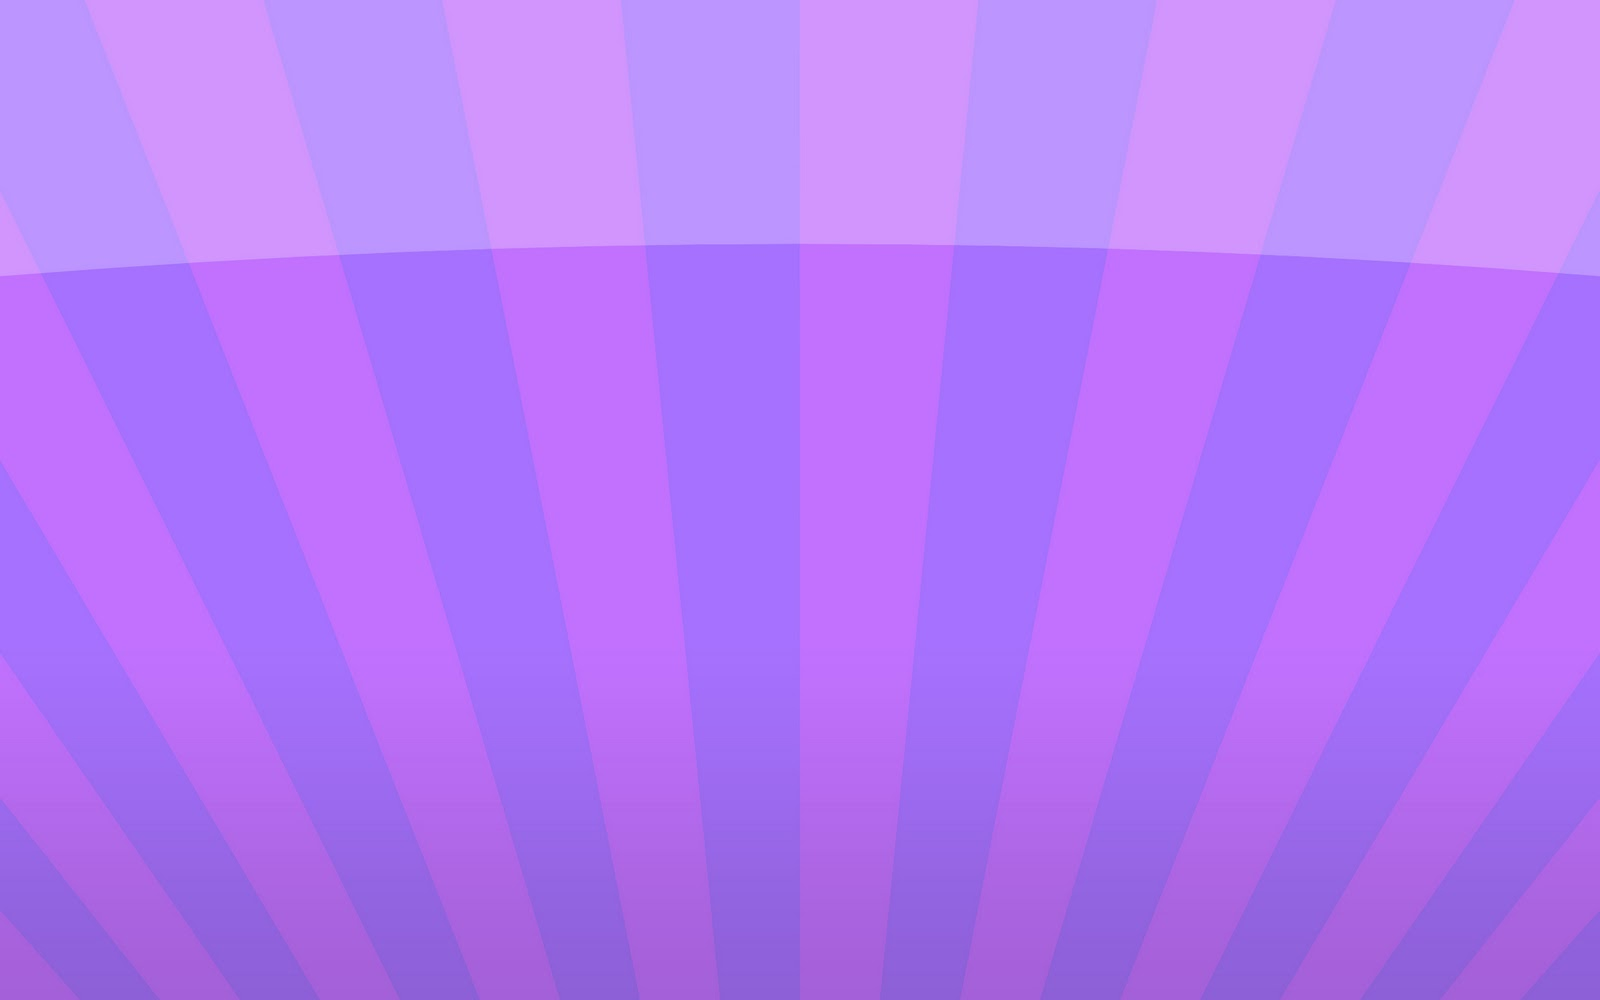 Black and white wallpapers purple stripes wallpaper for Purple and white wallpaper